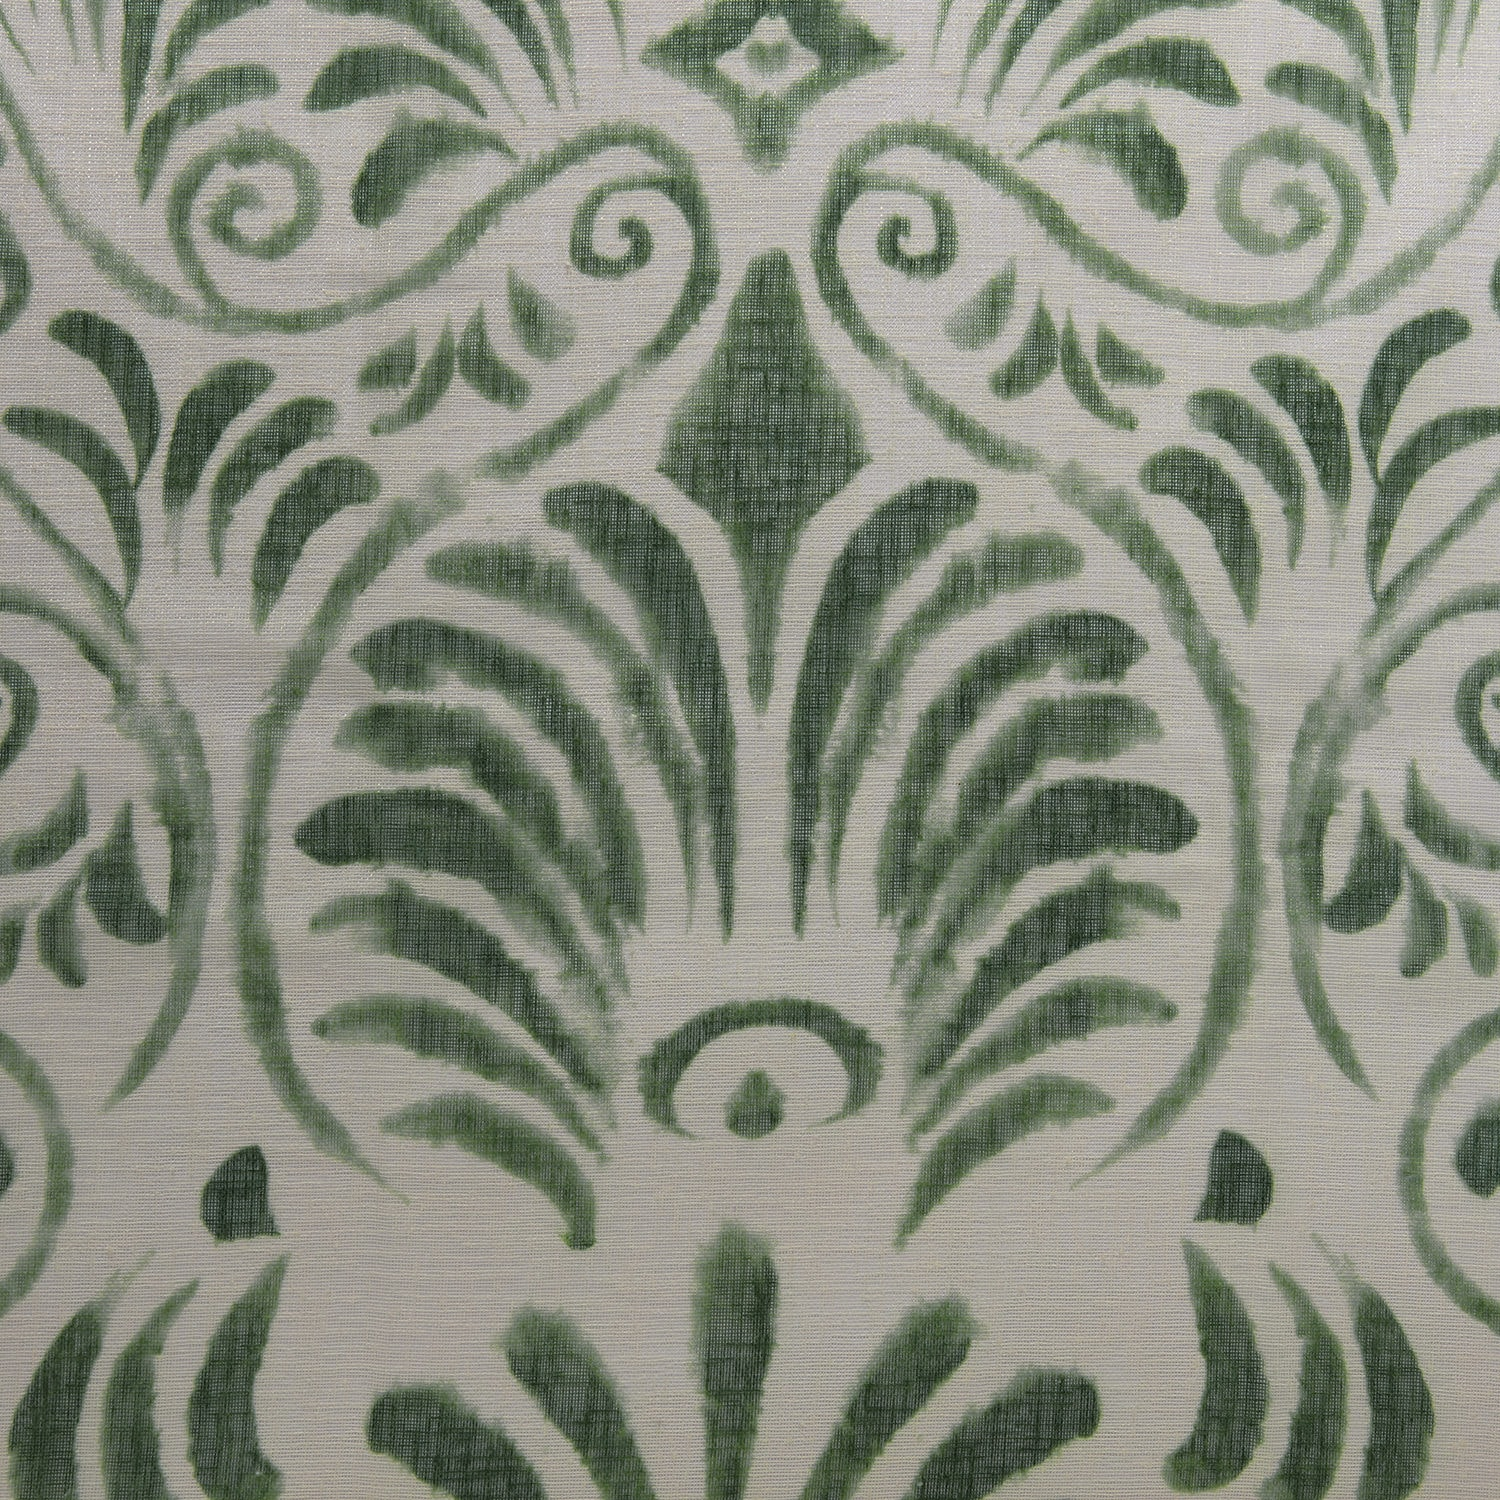 Xenia Green Printed Faux Linen Sheer Swatch